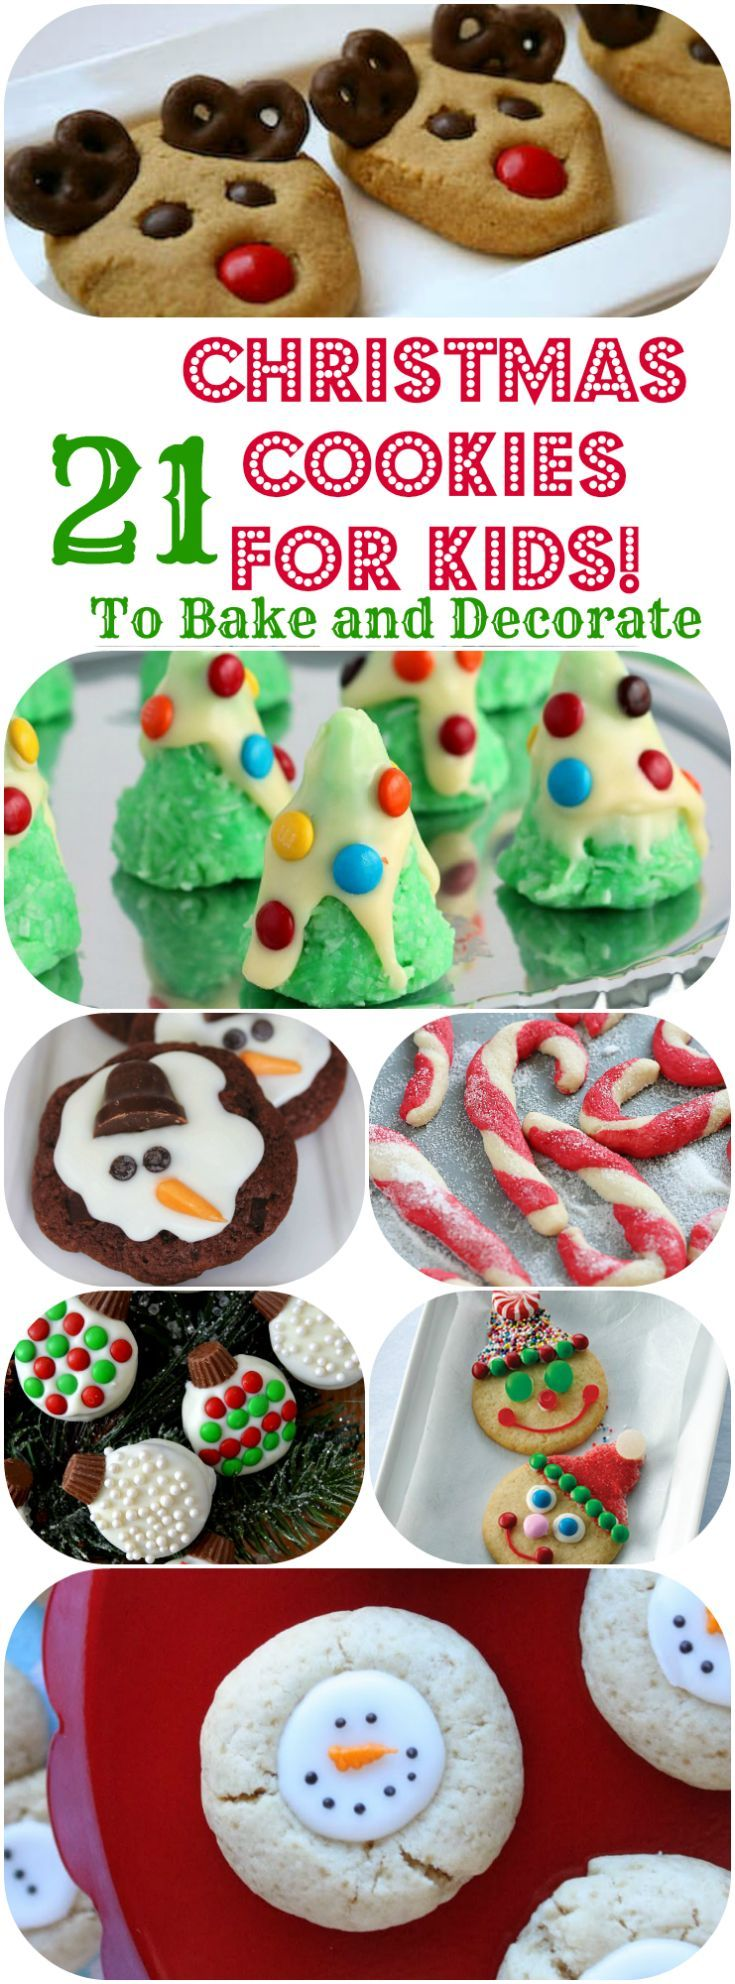 21 Christmas Cookies for Kids! To Bake and Decorate!! Fun and Easy Christmas…